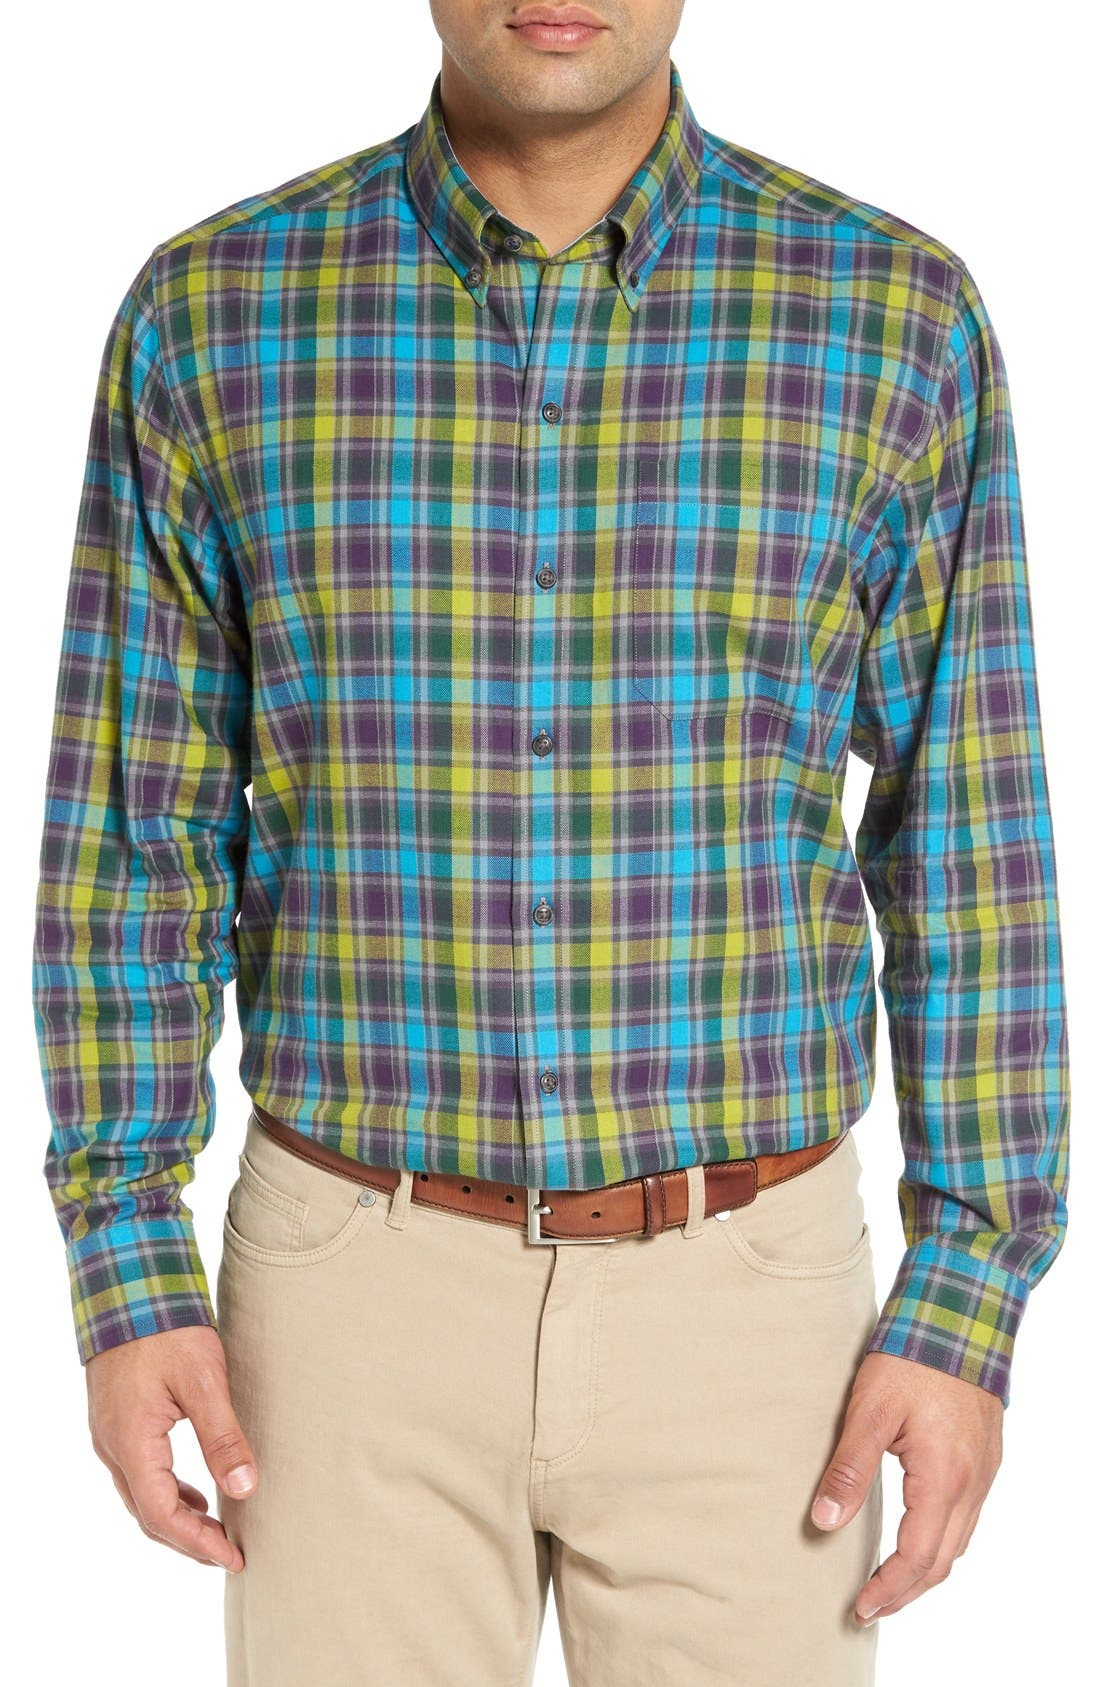 Alternate Image 1 Selected - Cutter & Buck 'Timber' Plaid Cotton Twill Sport Shirt (Big & Tall)